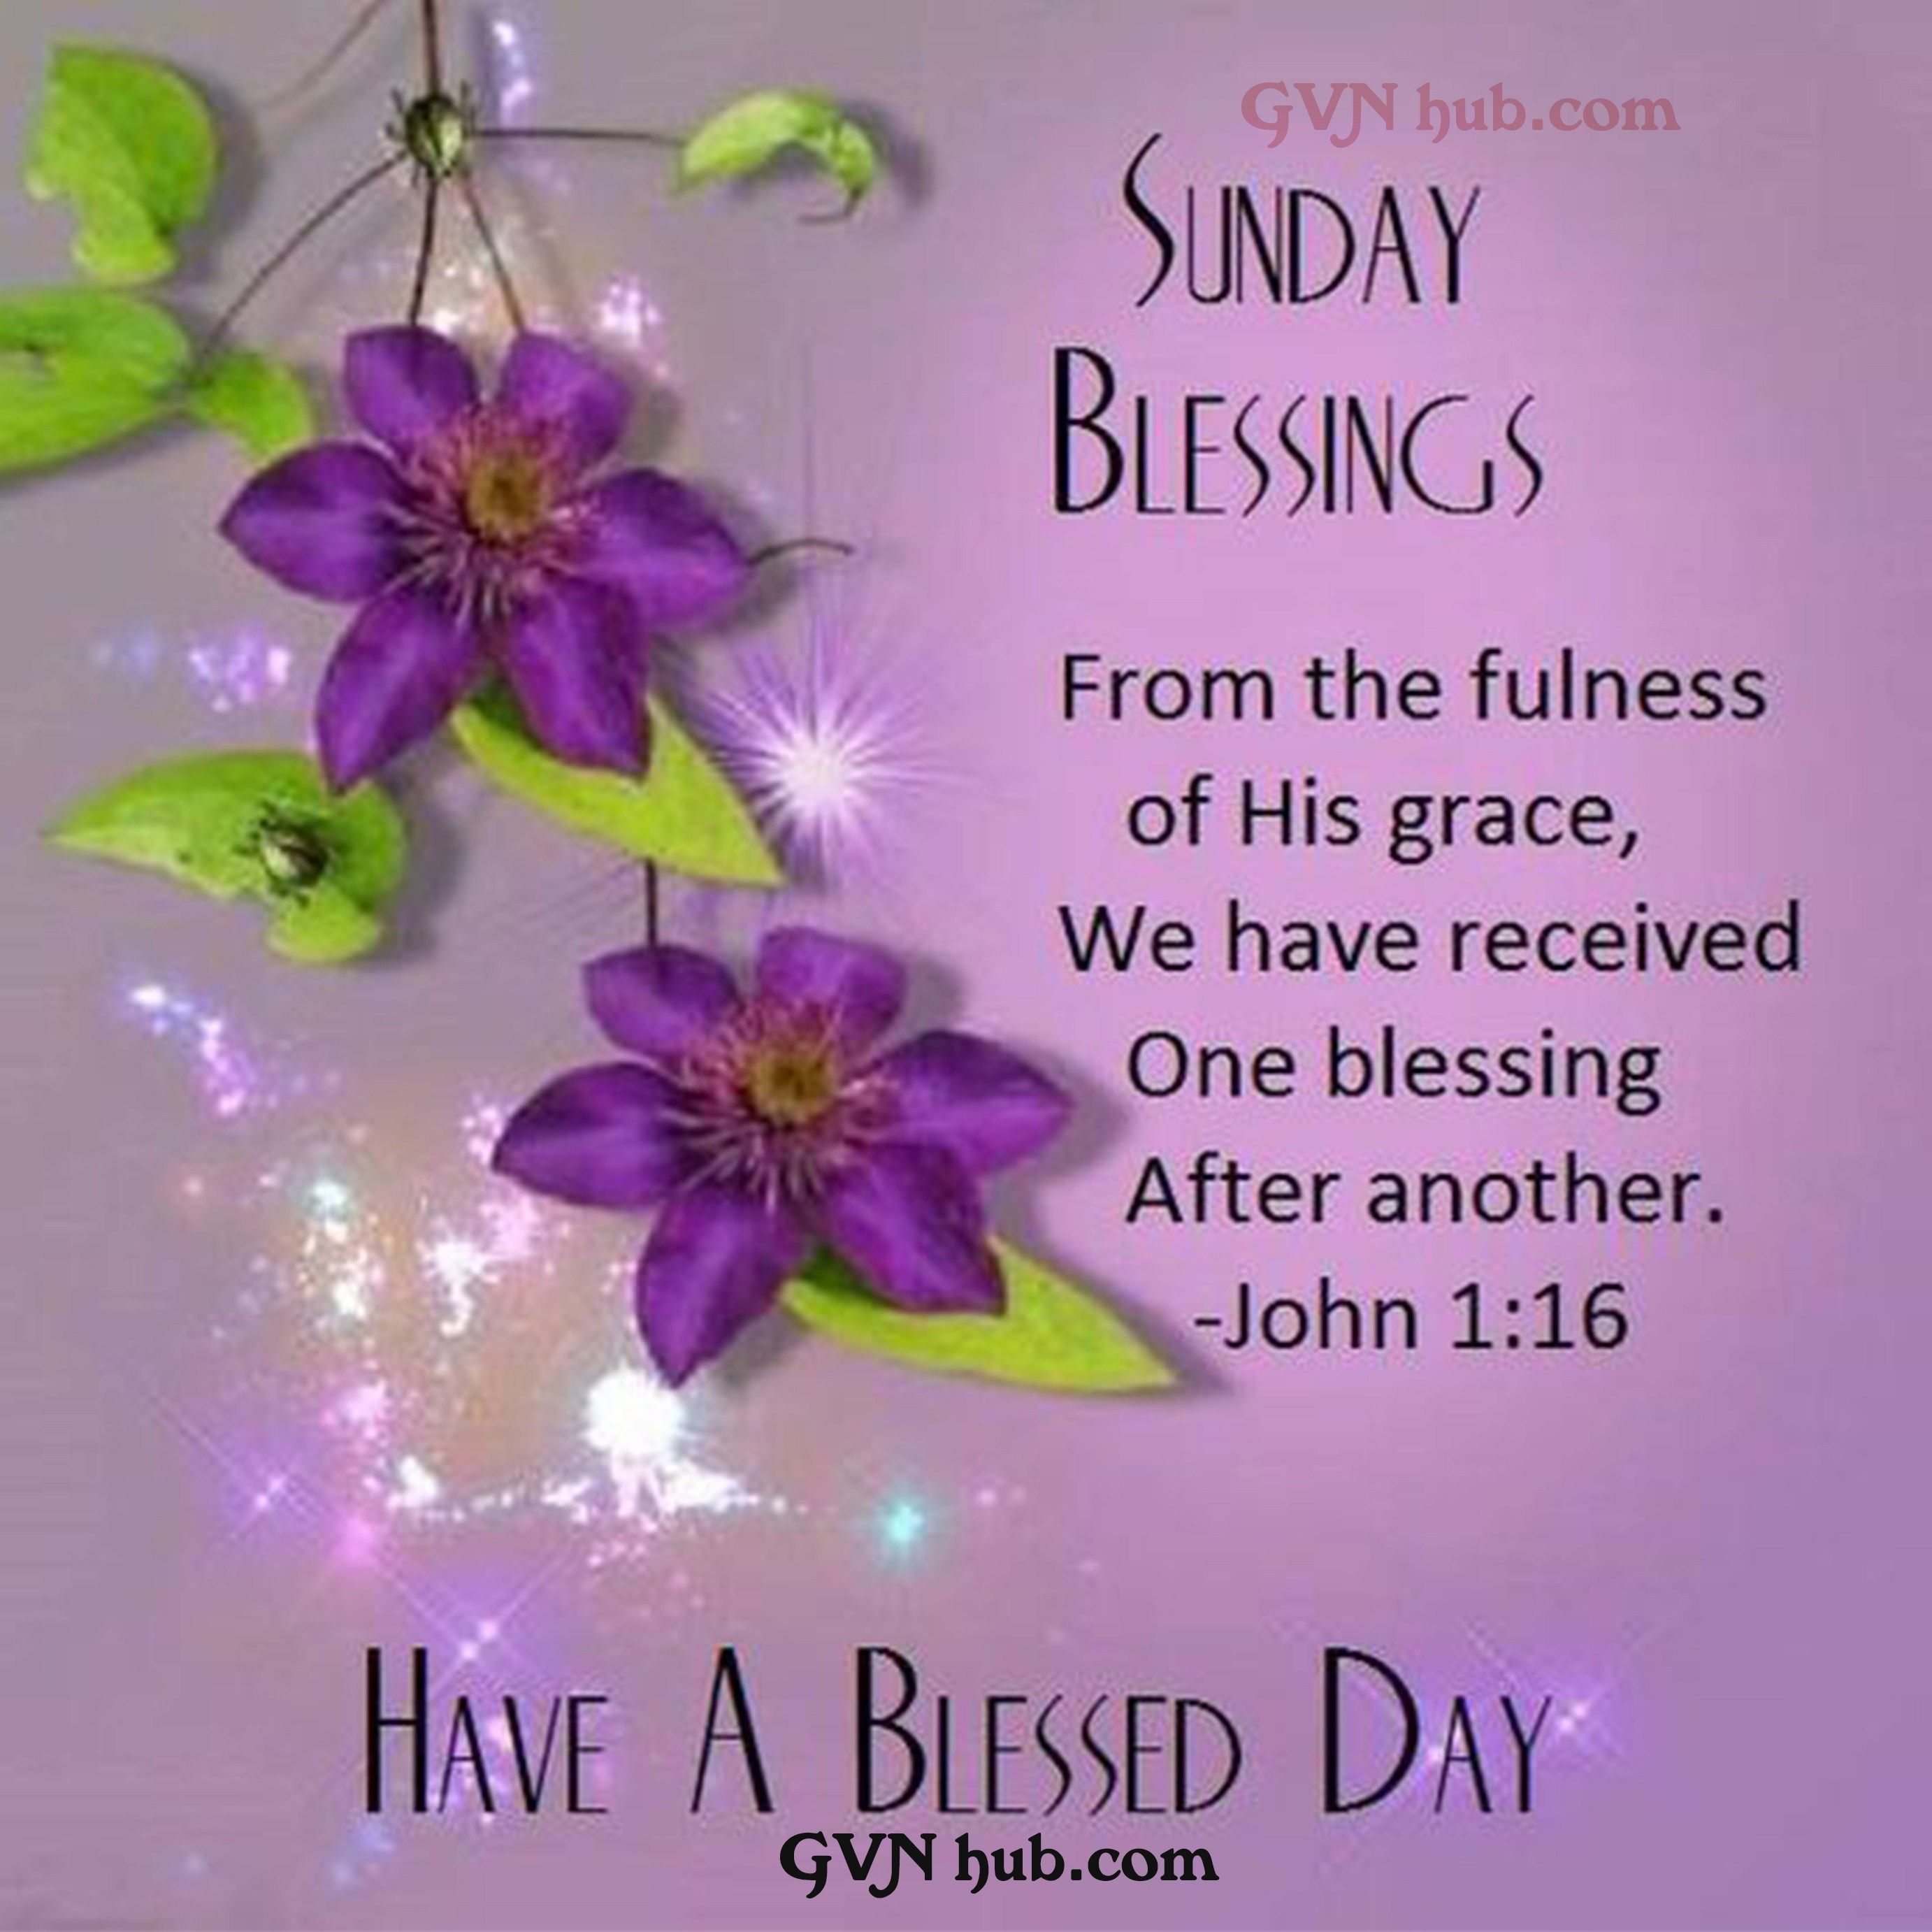 20 Best Quotes About Blessings   GVN Hub   Happy sunday quotes ...